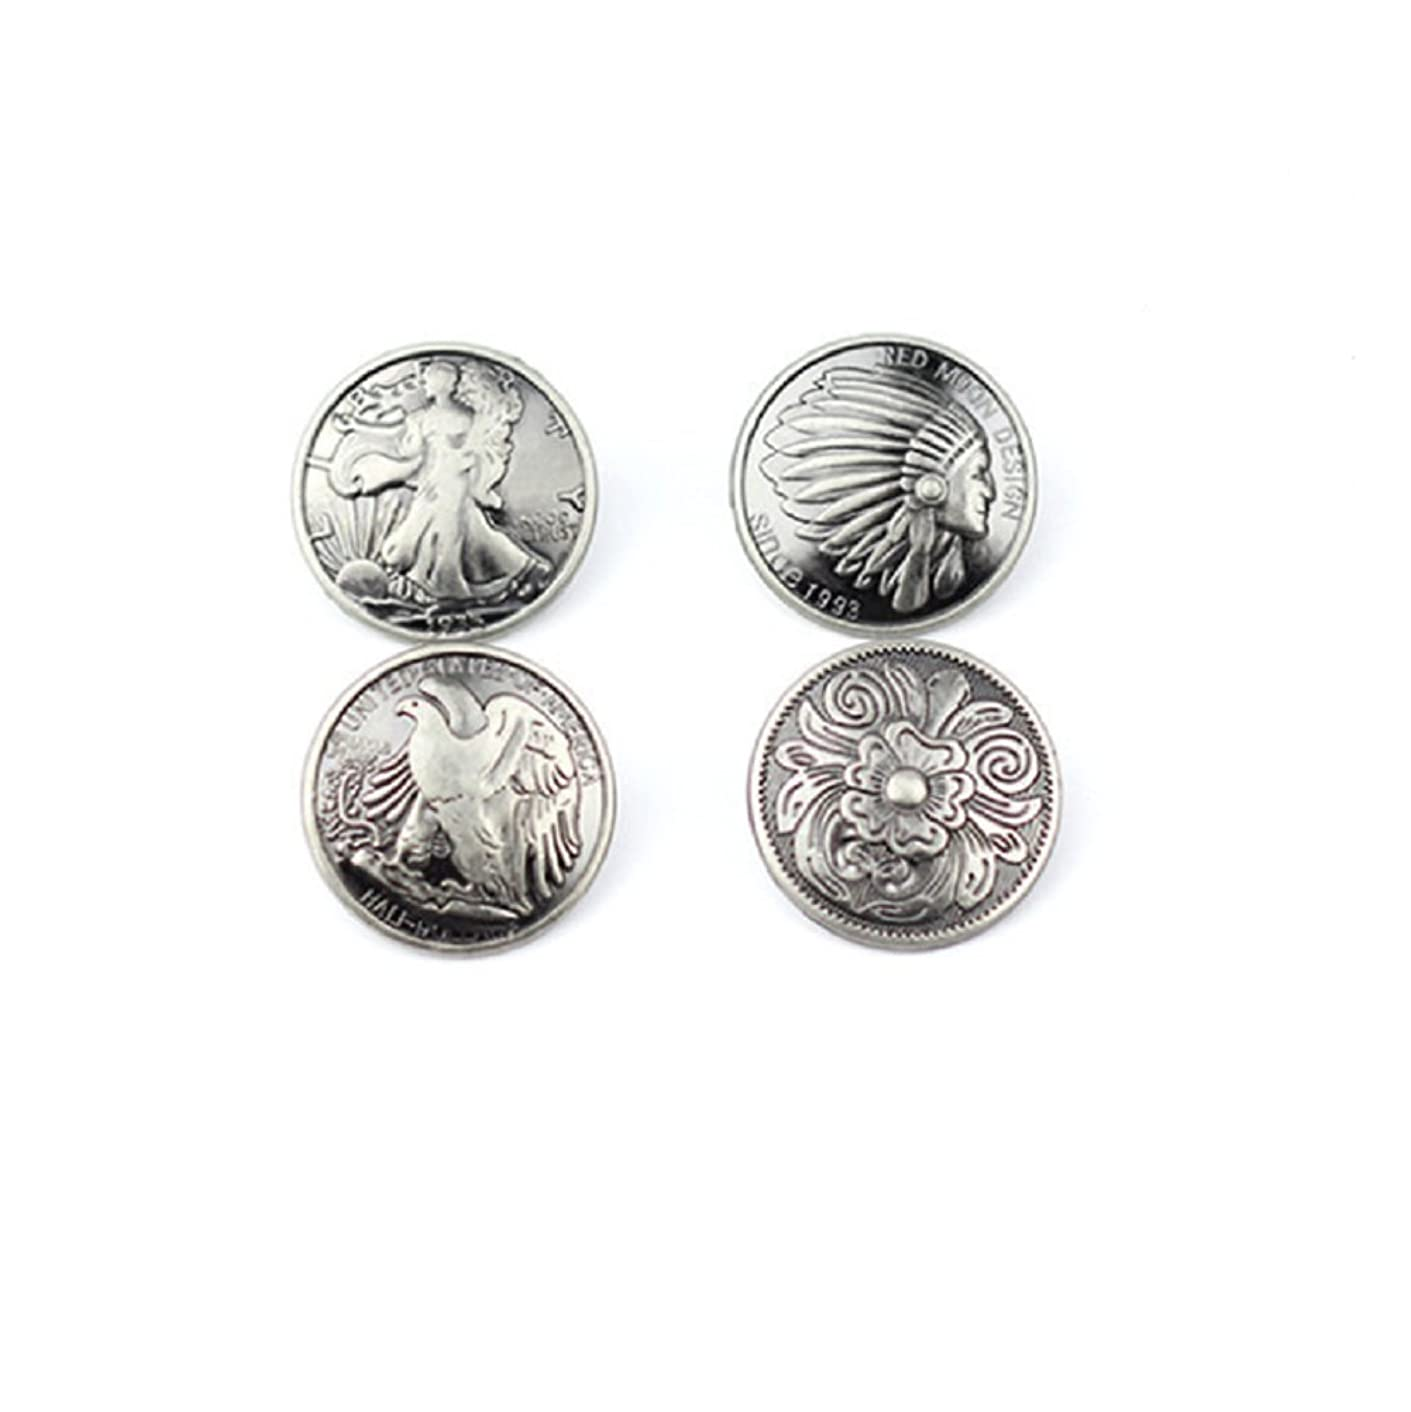 Driak 4pcs 30mm Silver Coin Button Indian button DIY manual leather accessories For Fashion Man Woman Belt and Bag Jewelry Accessories